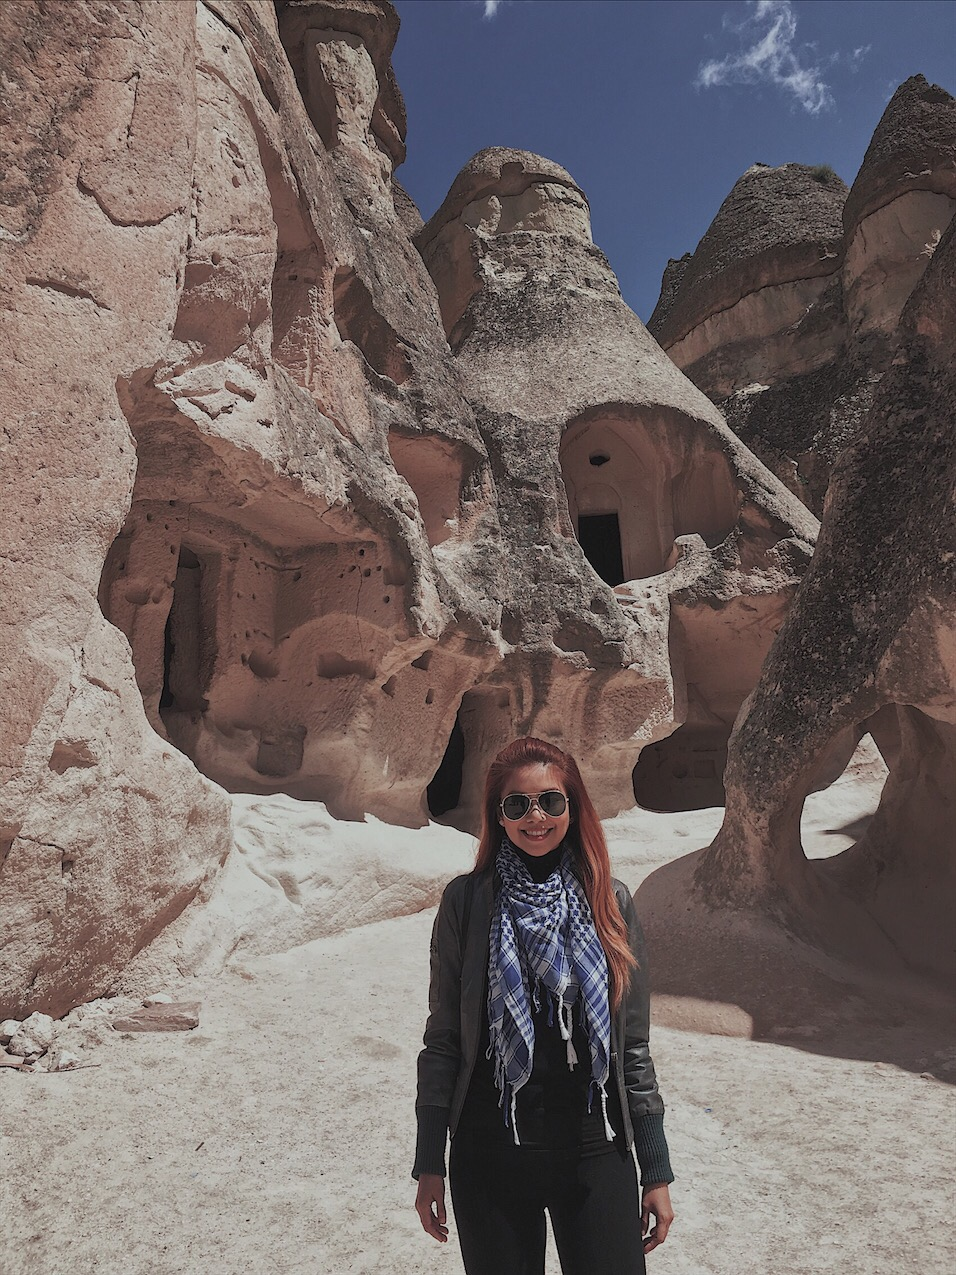 Bianca Valerio monks Valley Cappadocia turkey